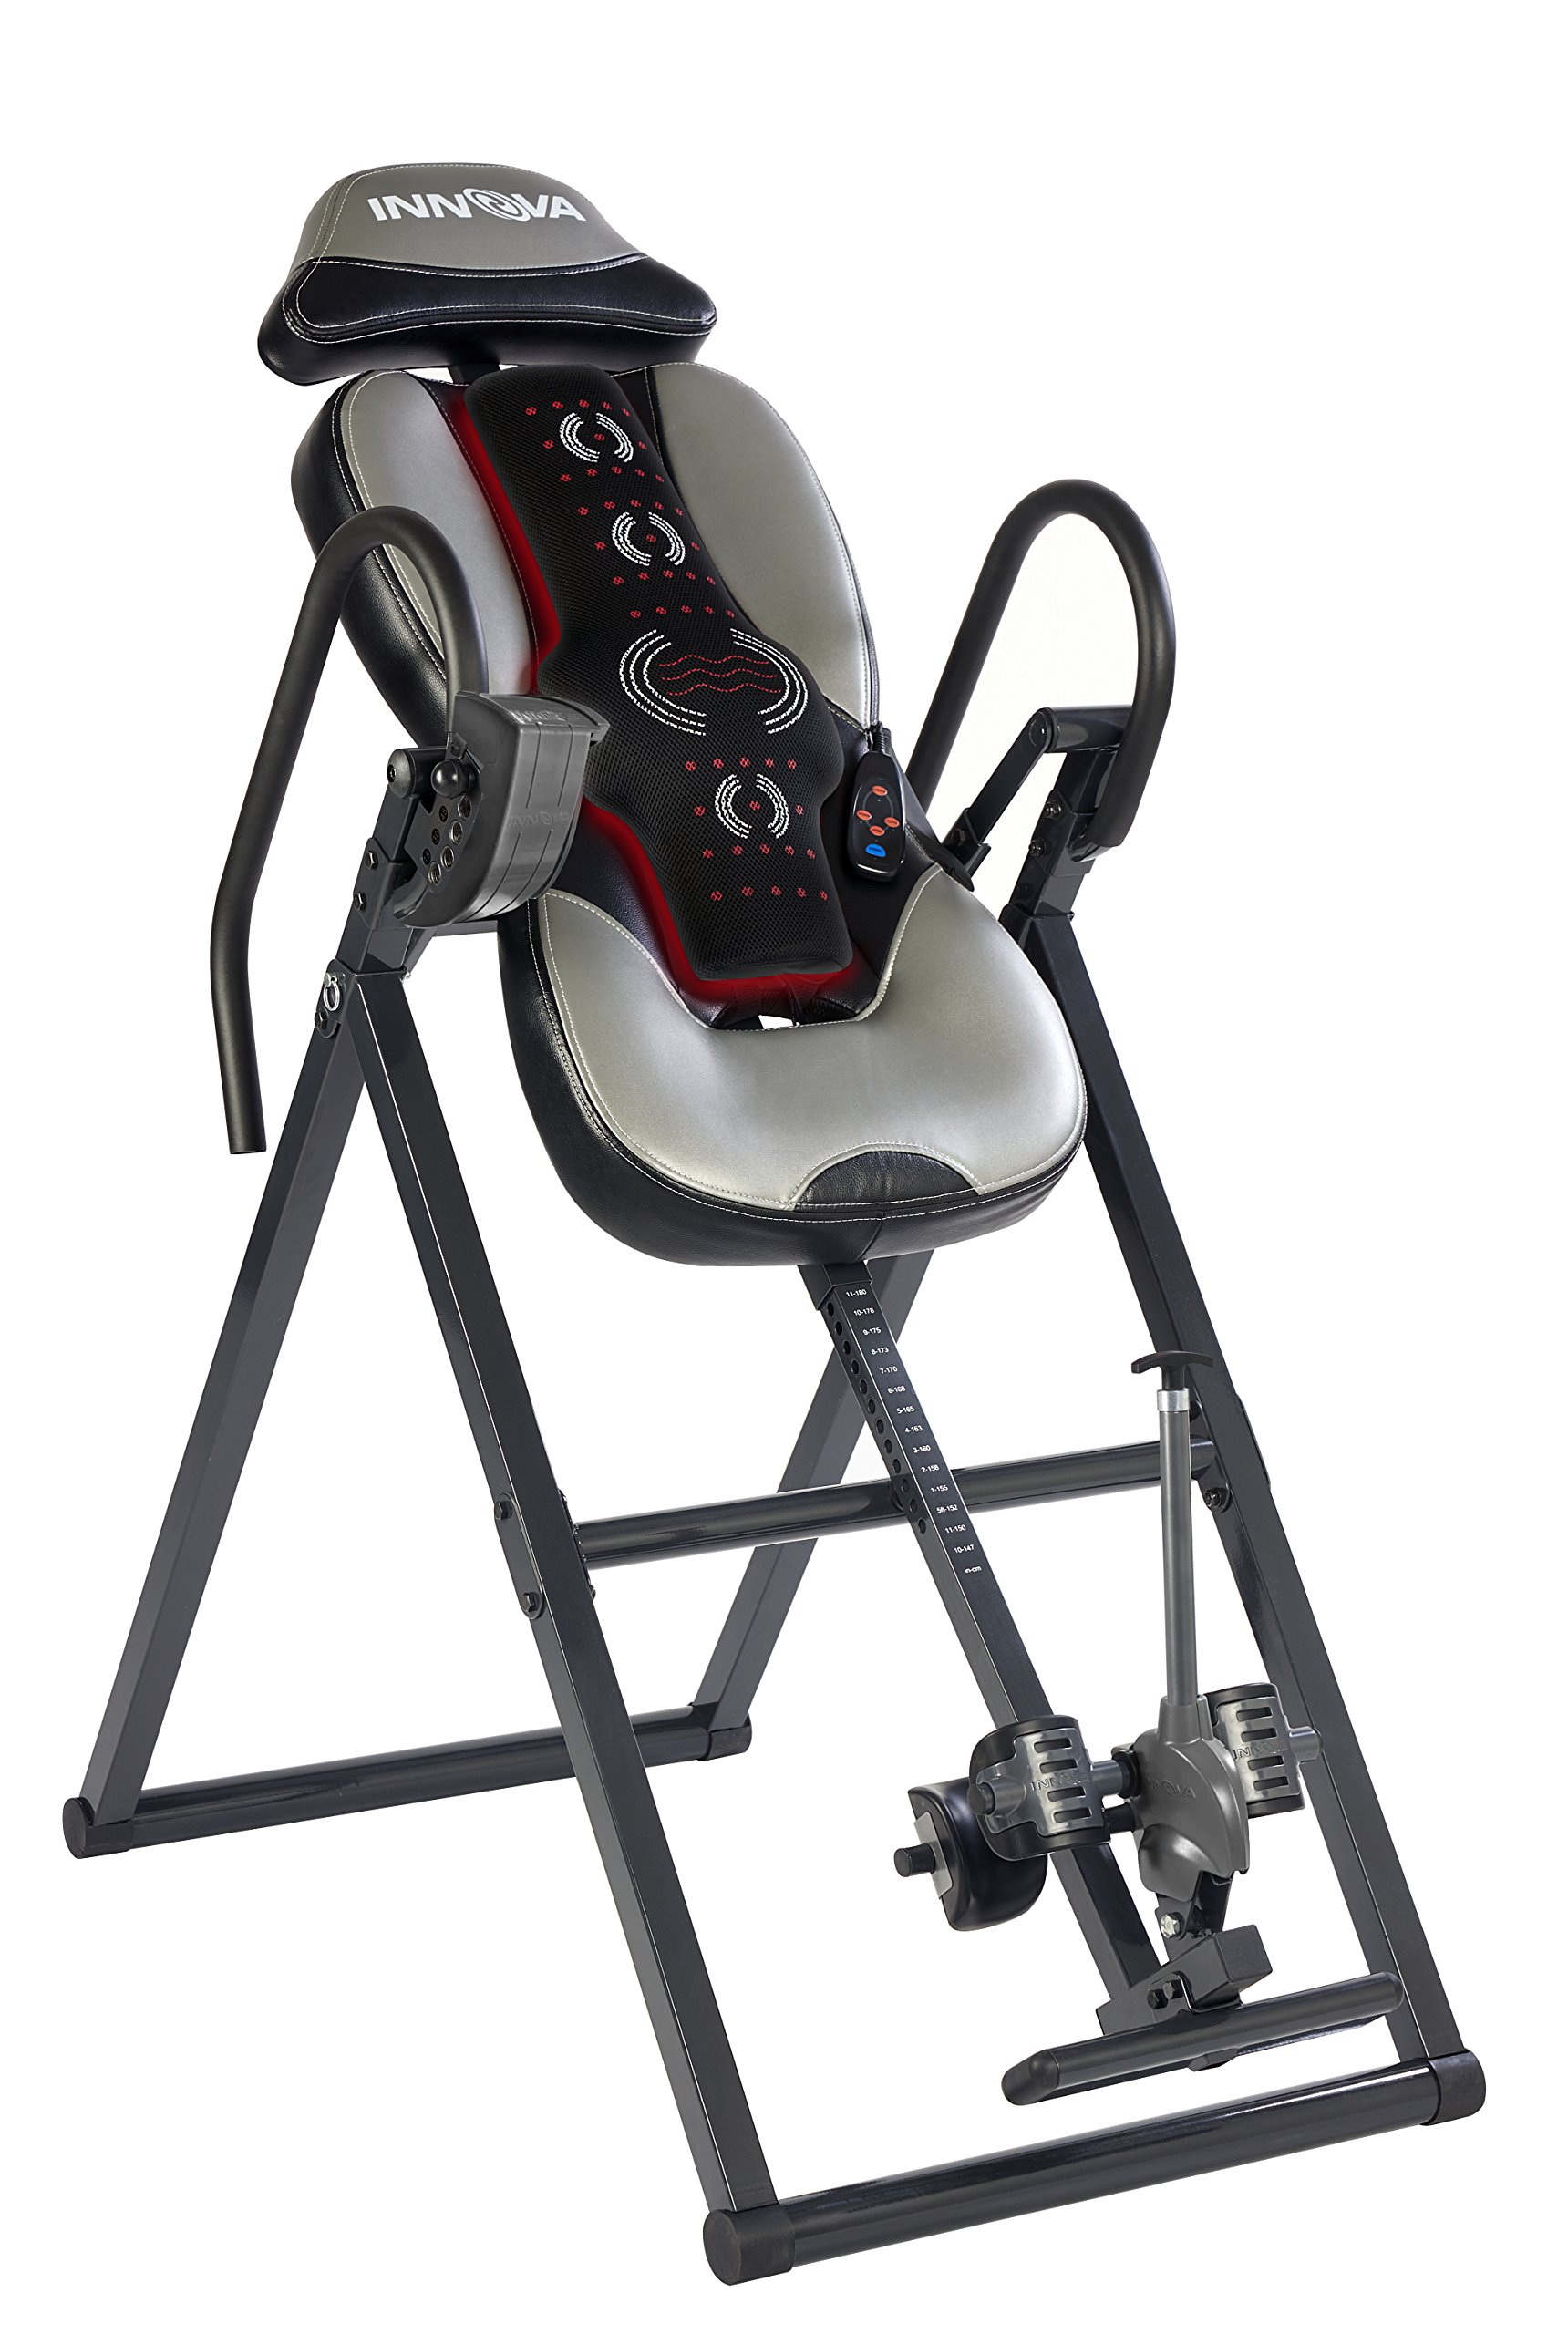 Innova ITM5900 Advanced Heat and Massage Inversion Therapy Table by Innova Health and Fitness (Image #1)